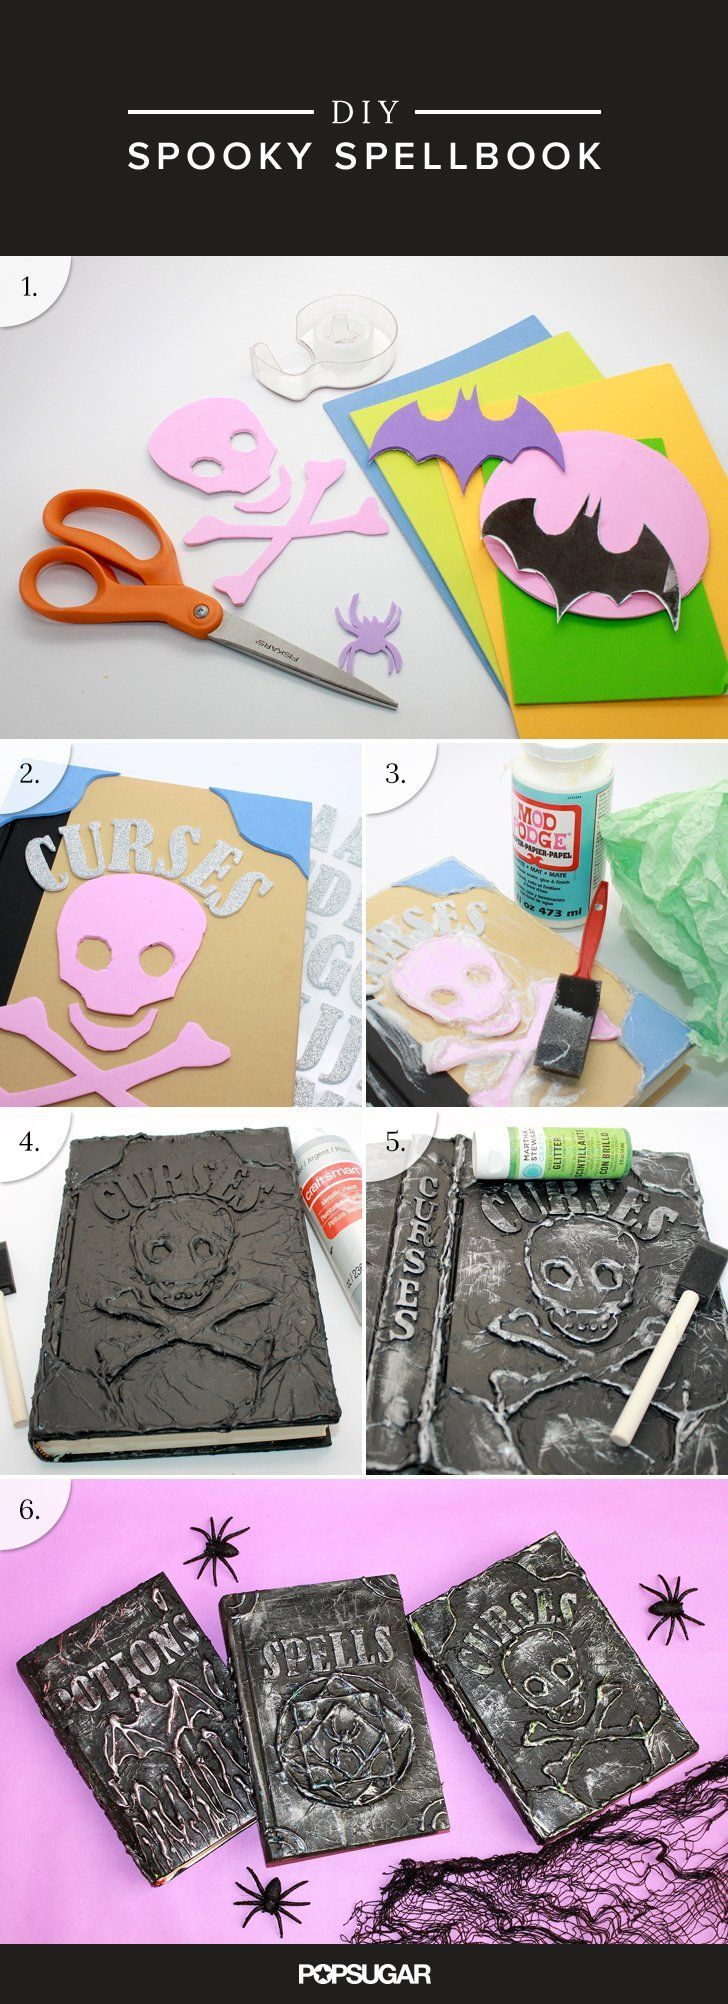 If you're in need of some last-minute Halloween decor for you party, then here's a super easy and spooky DIY that won't break the bank!